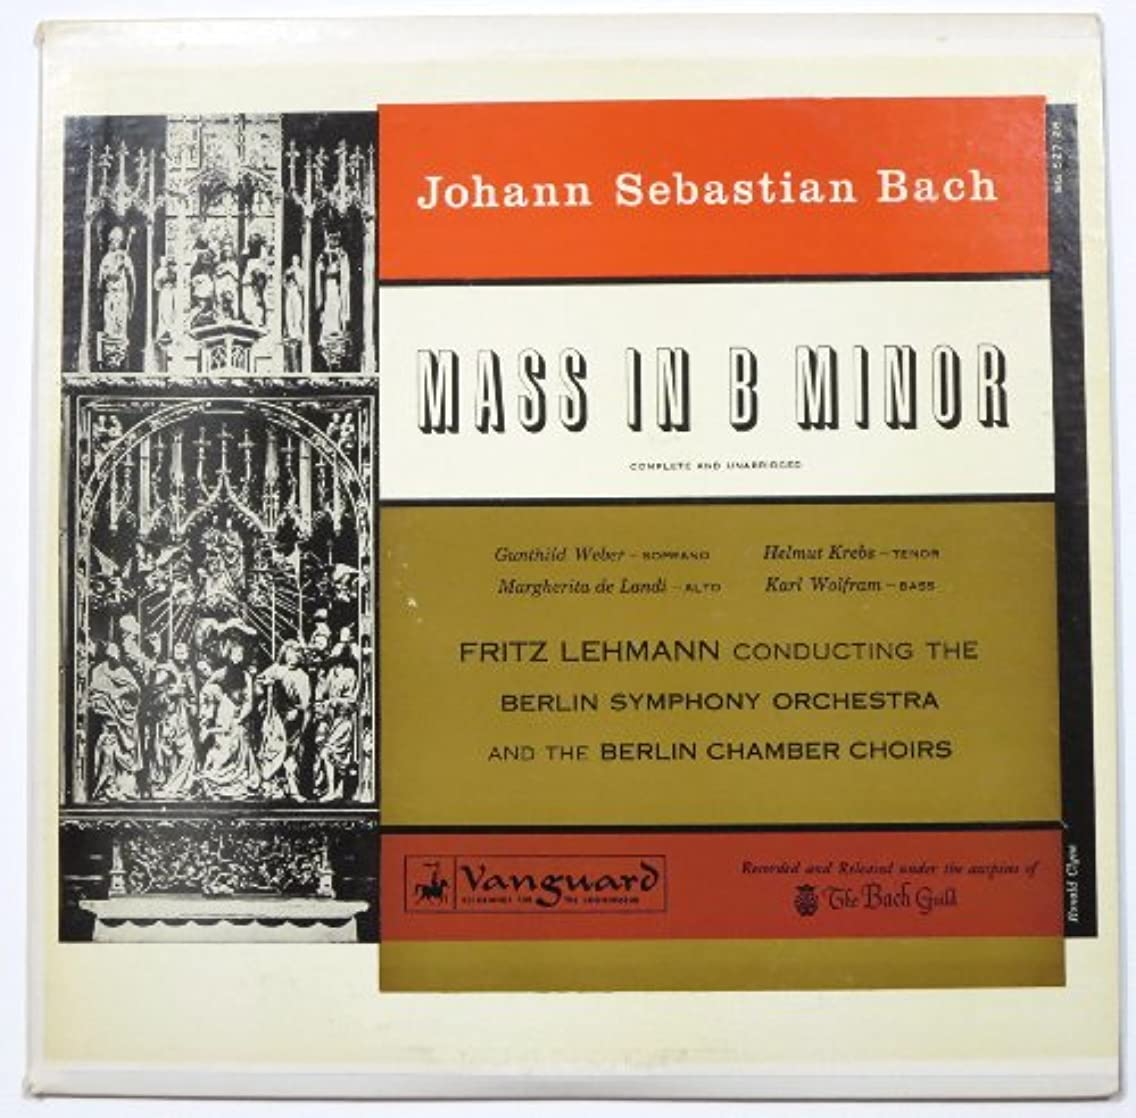 Bach: Mass in B Minor (Complete) / Fritz Lehmann Conducting The Berlin Symphony Orchestra and The Berlin Chamber Choirs (The Bach Guild)